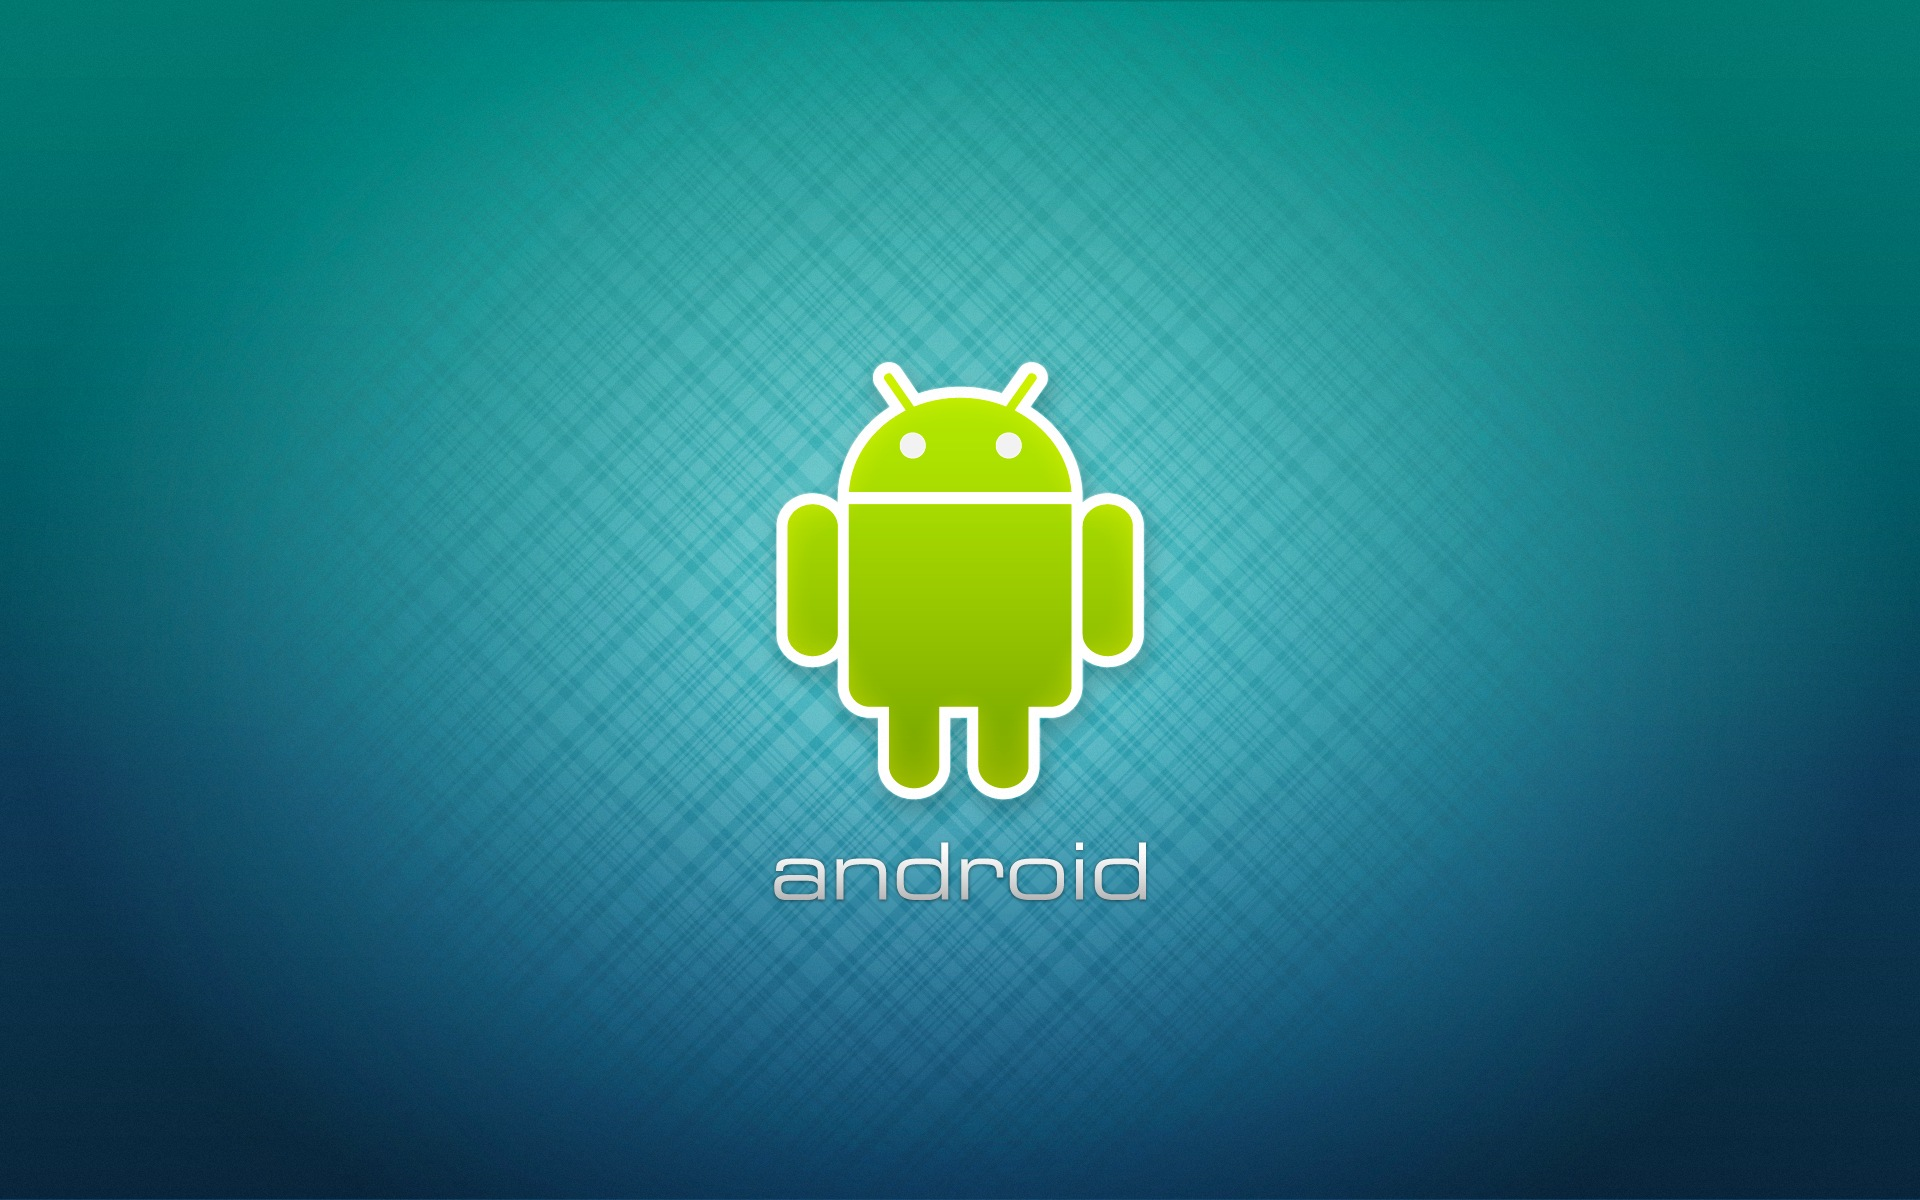 Android High Quality Wallpaper in HD All HD Wallpaper 2014 1920x1200